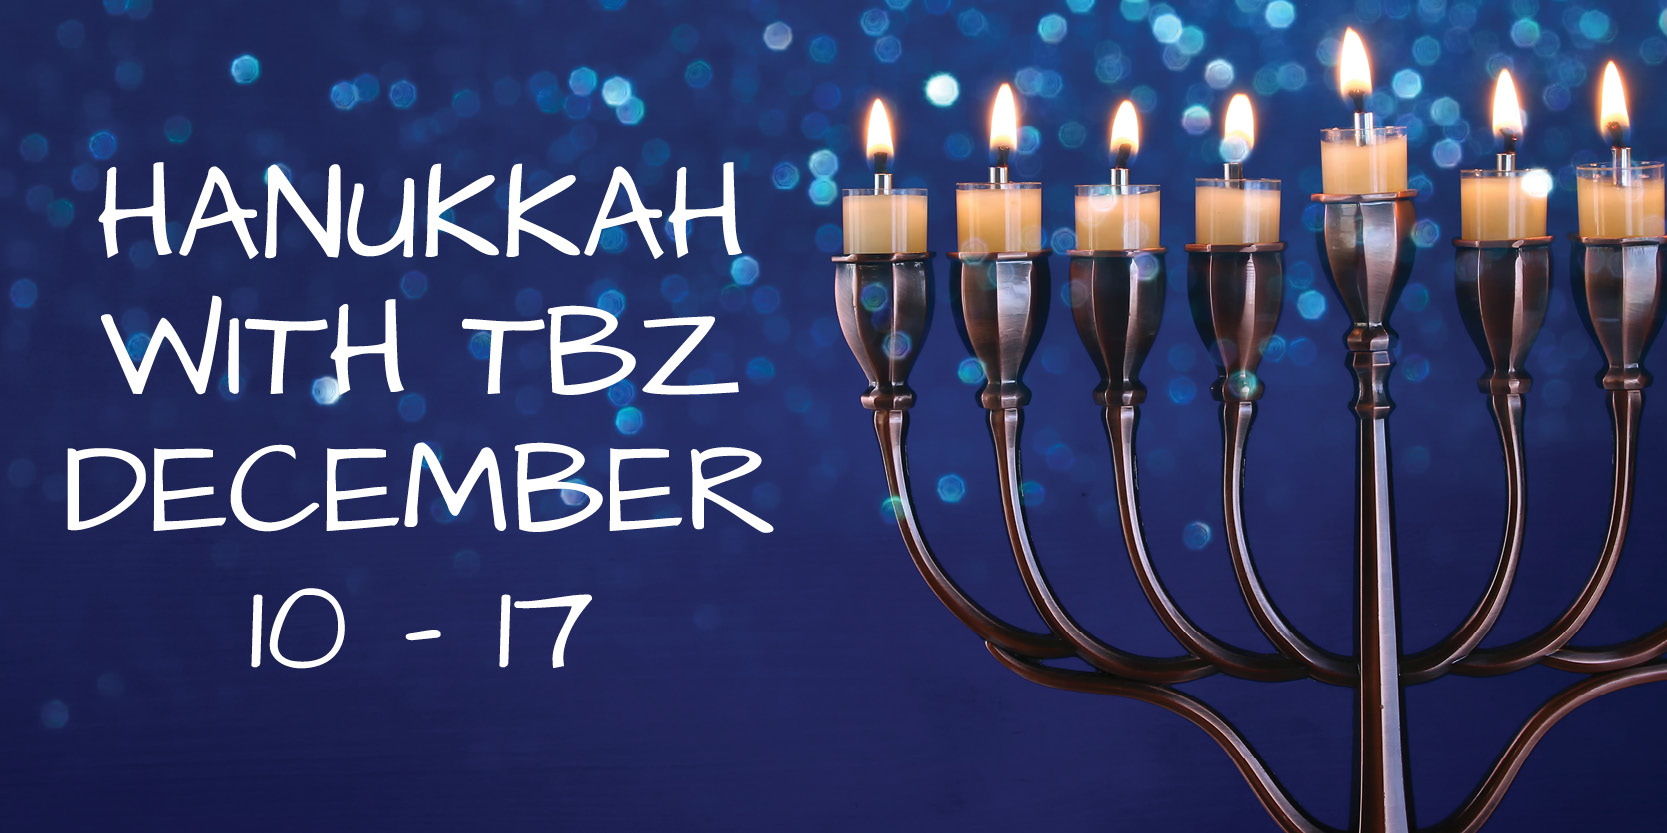 "<a href=""https://tbzwinter2020programming.wordpress.com/hanukkah-at-tbz/""